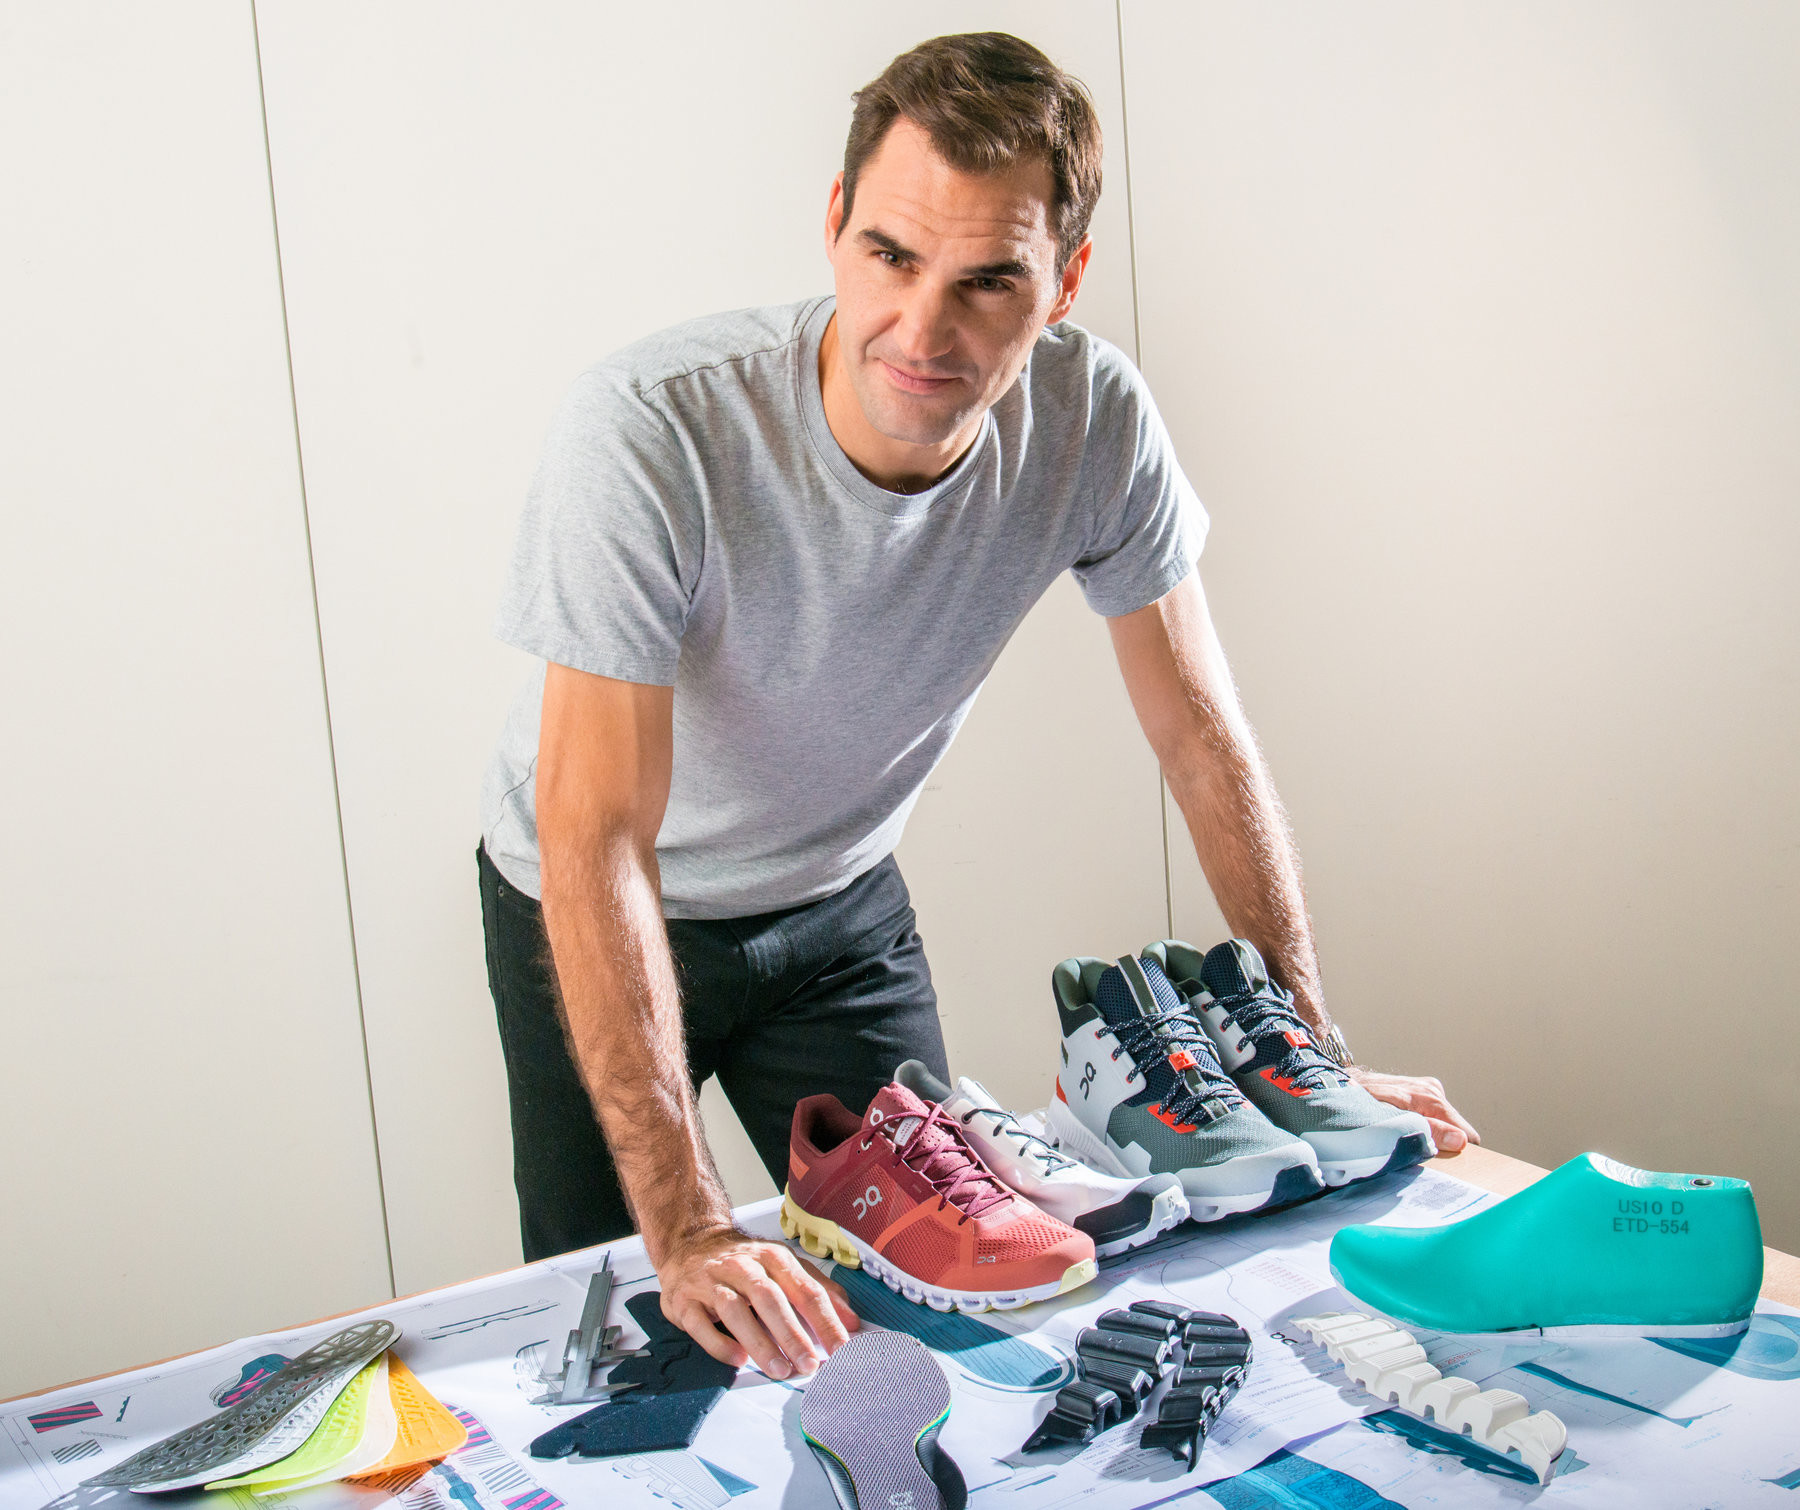 Roger Federer is getting into running shoe design, he has partnered with the Swiss running company On